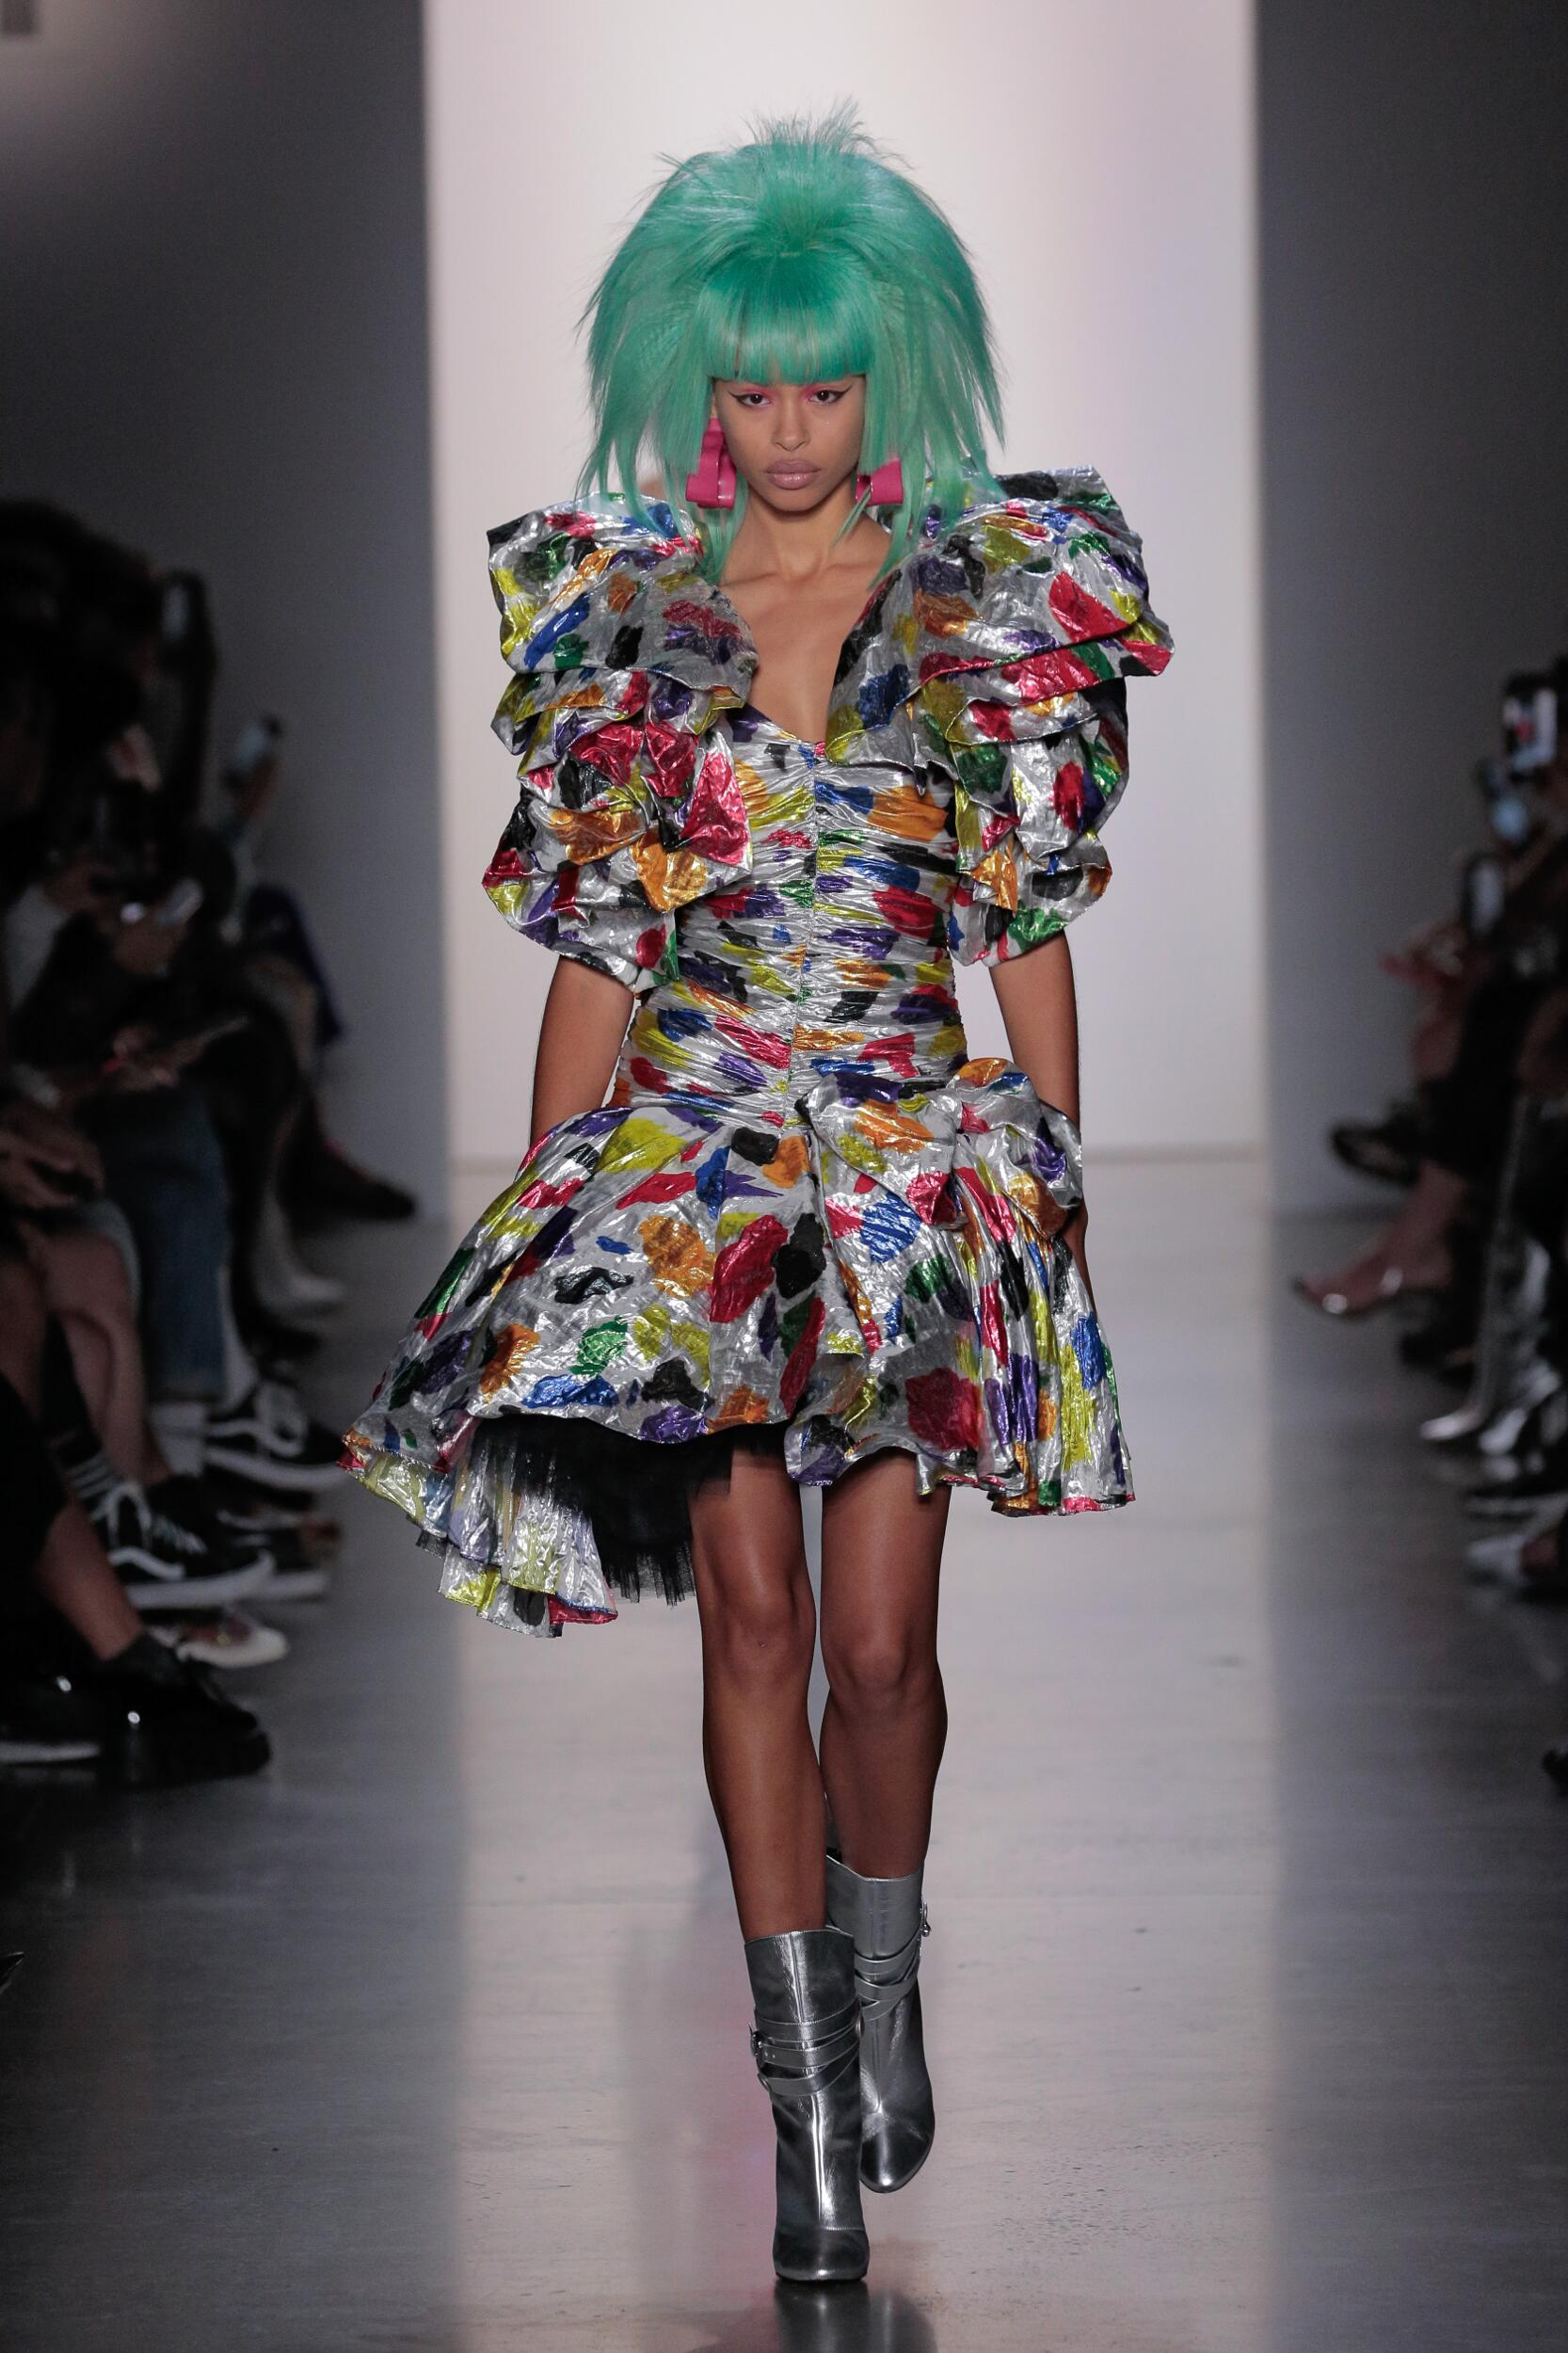 Fashion Model Woman Jeremy Scott Catwalk